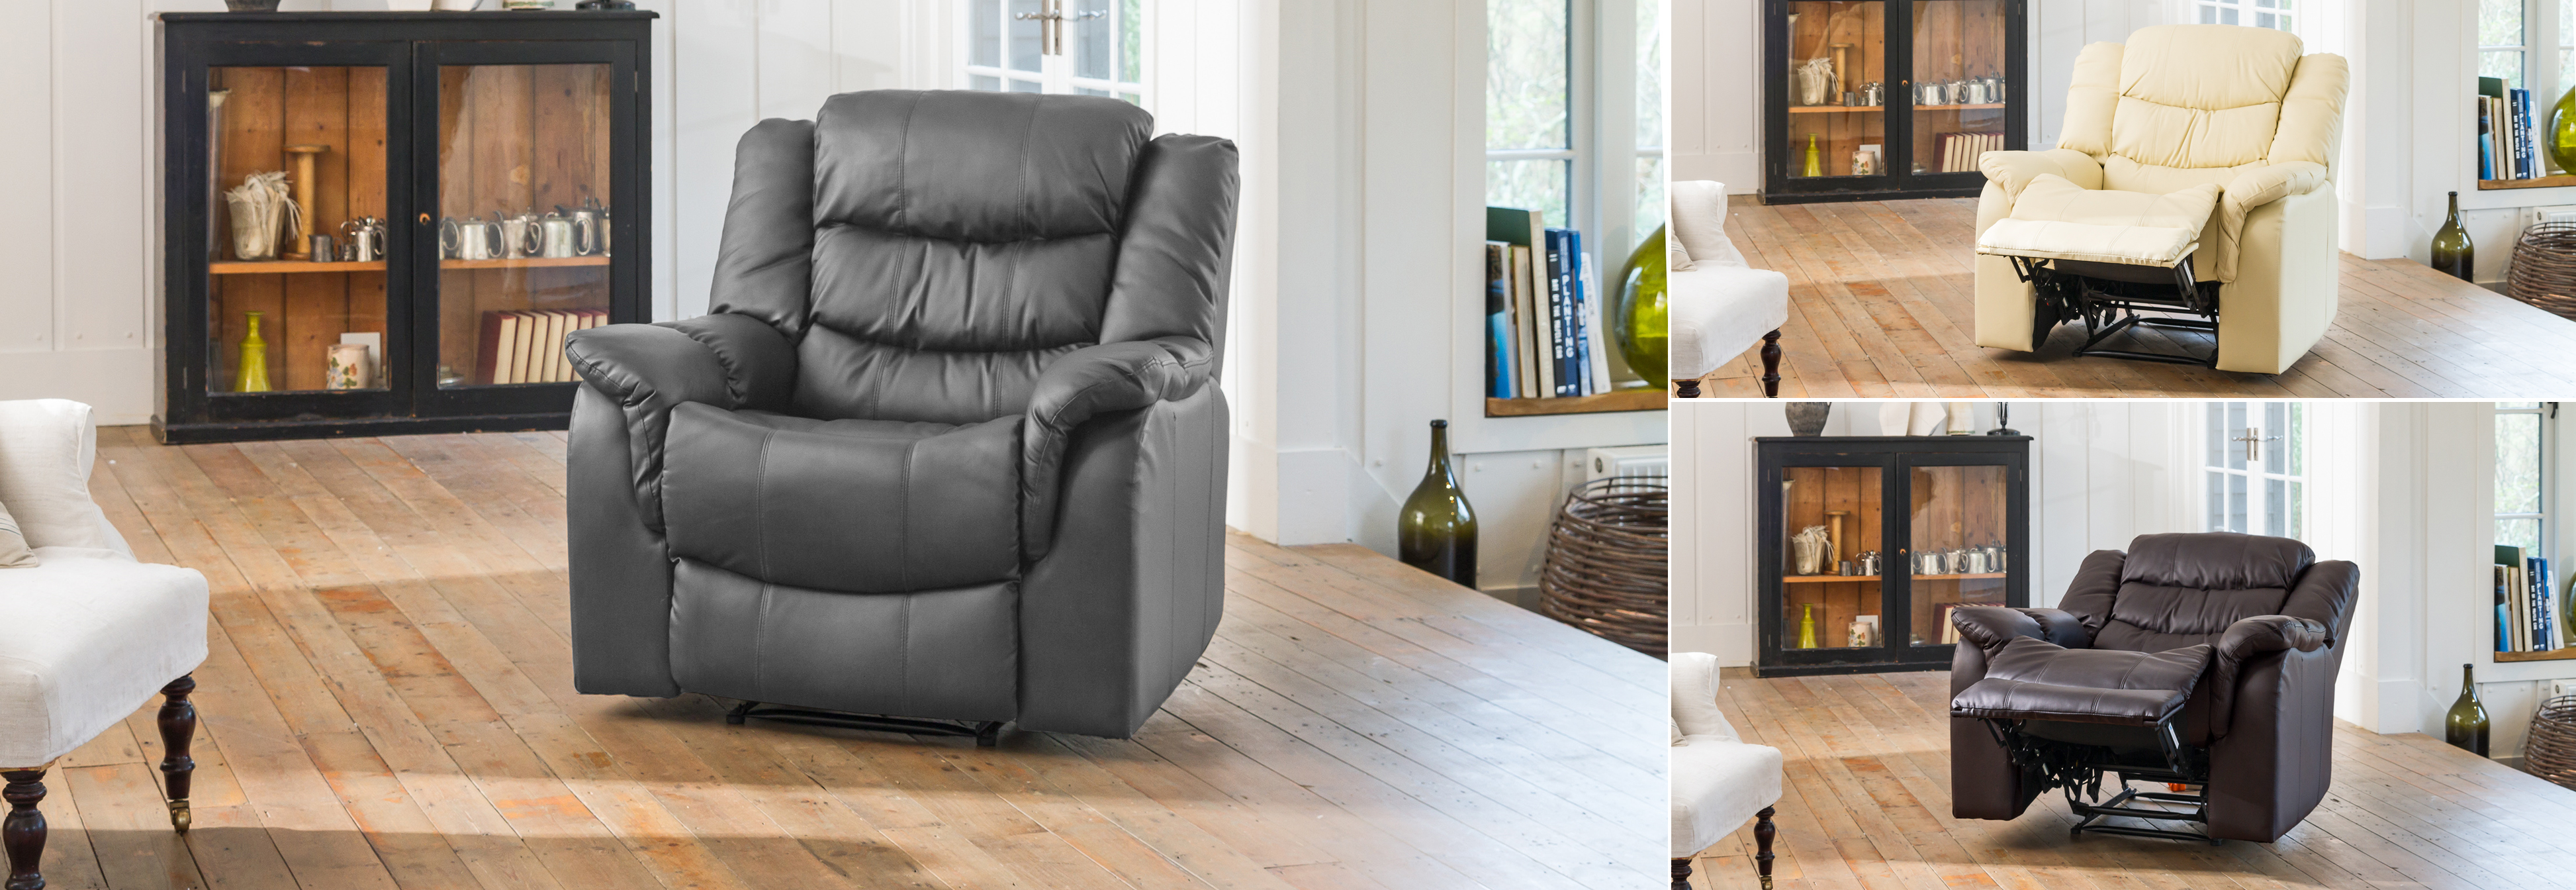 Kilcreene Reclining Chair  grey